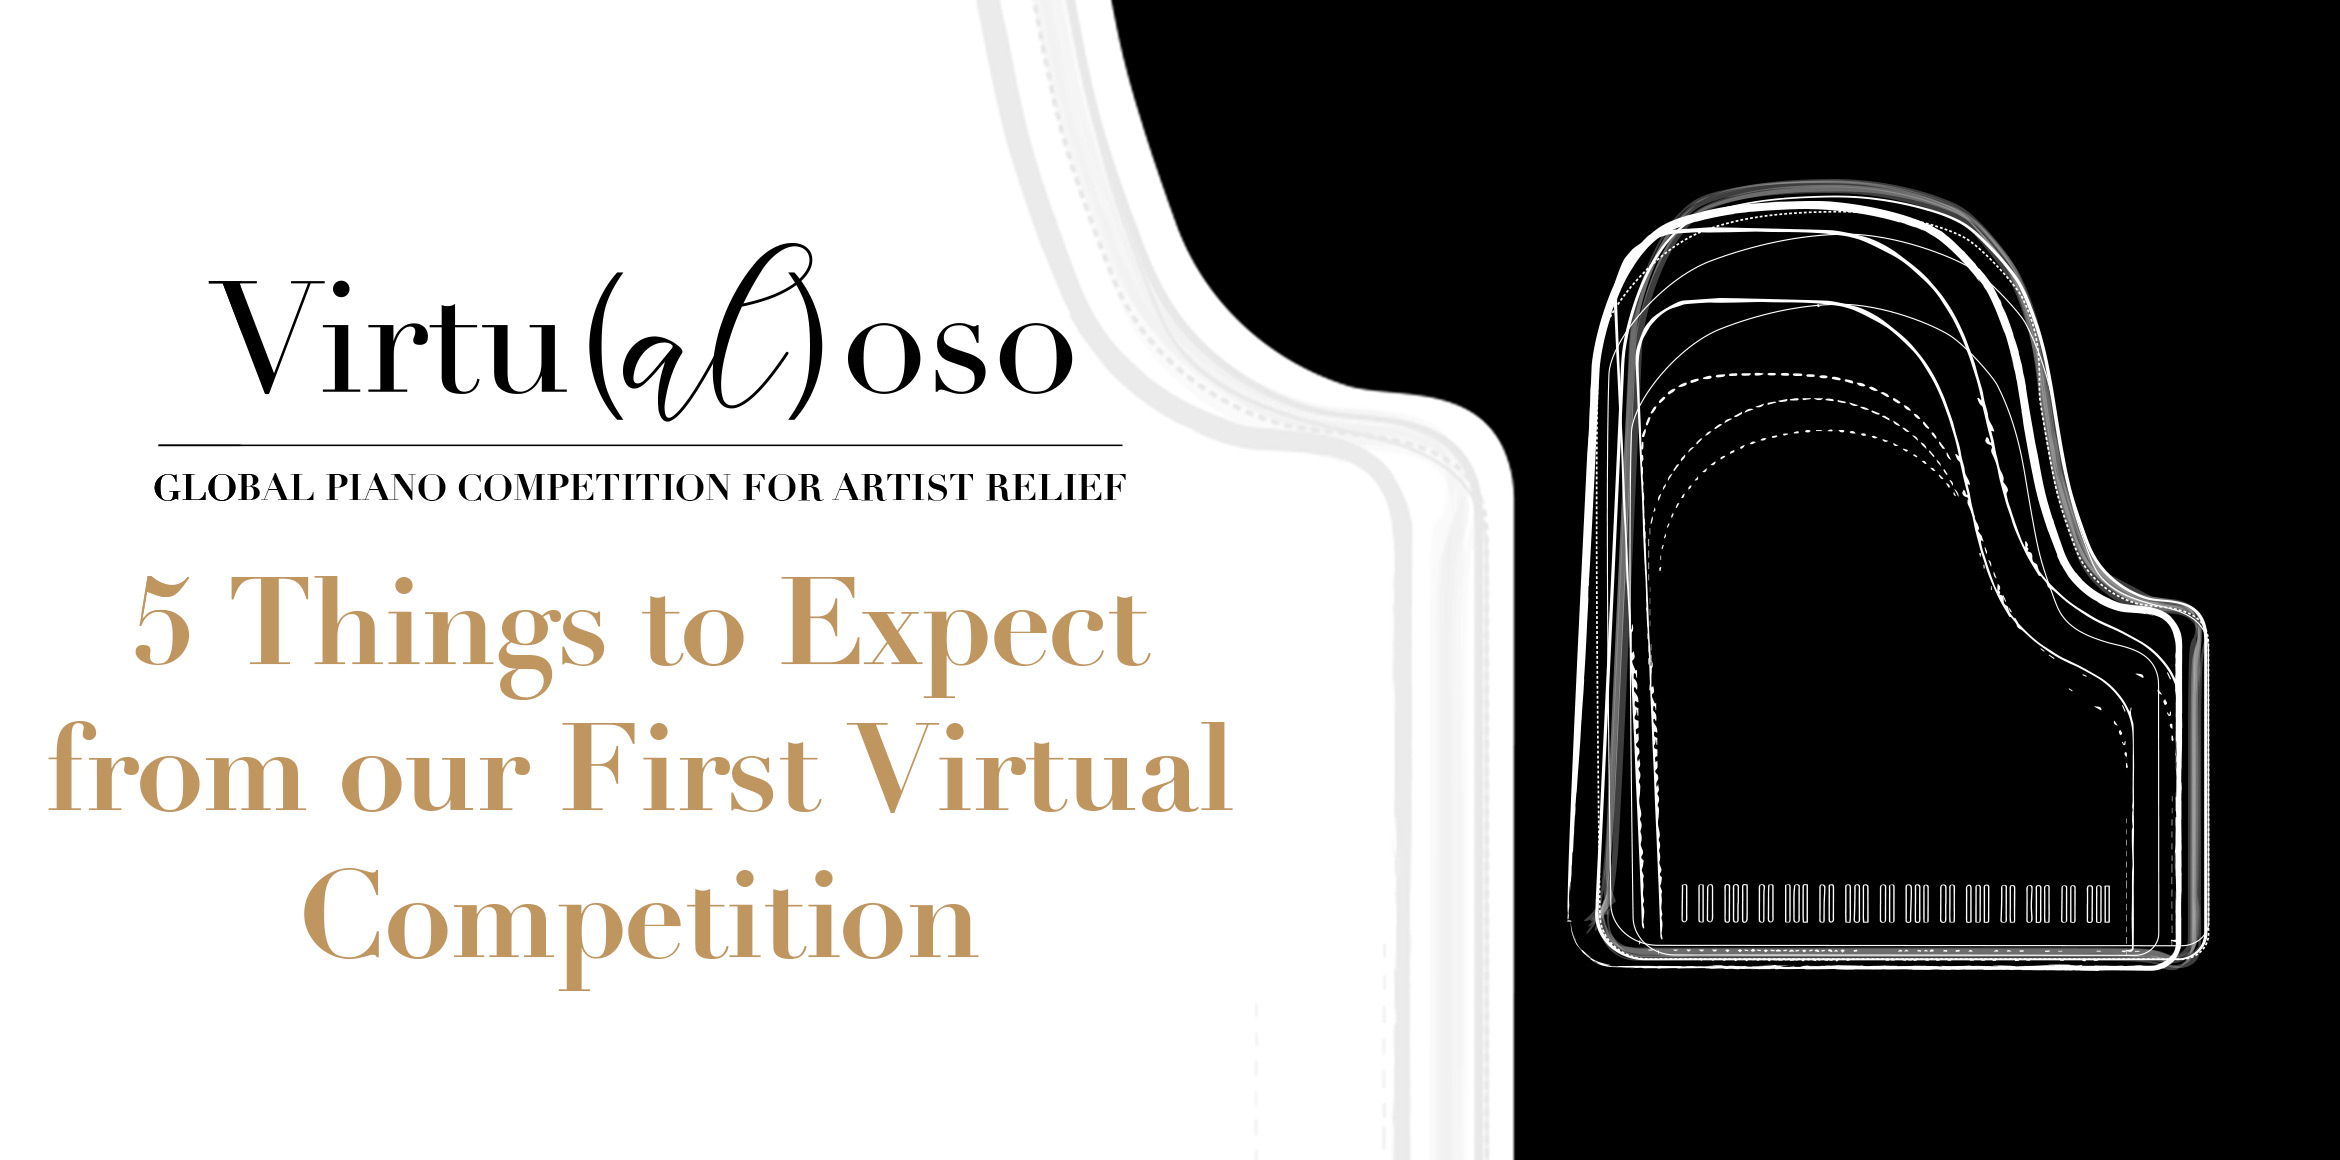 5 Things to Expect from our First Virtual Competition